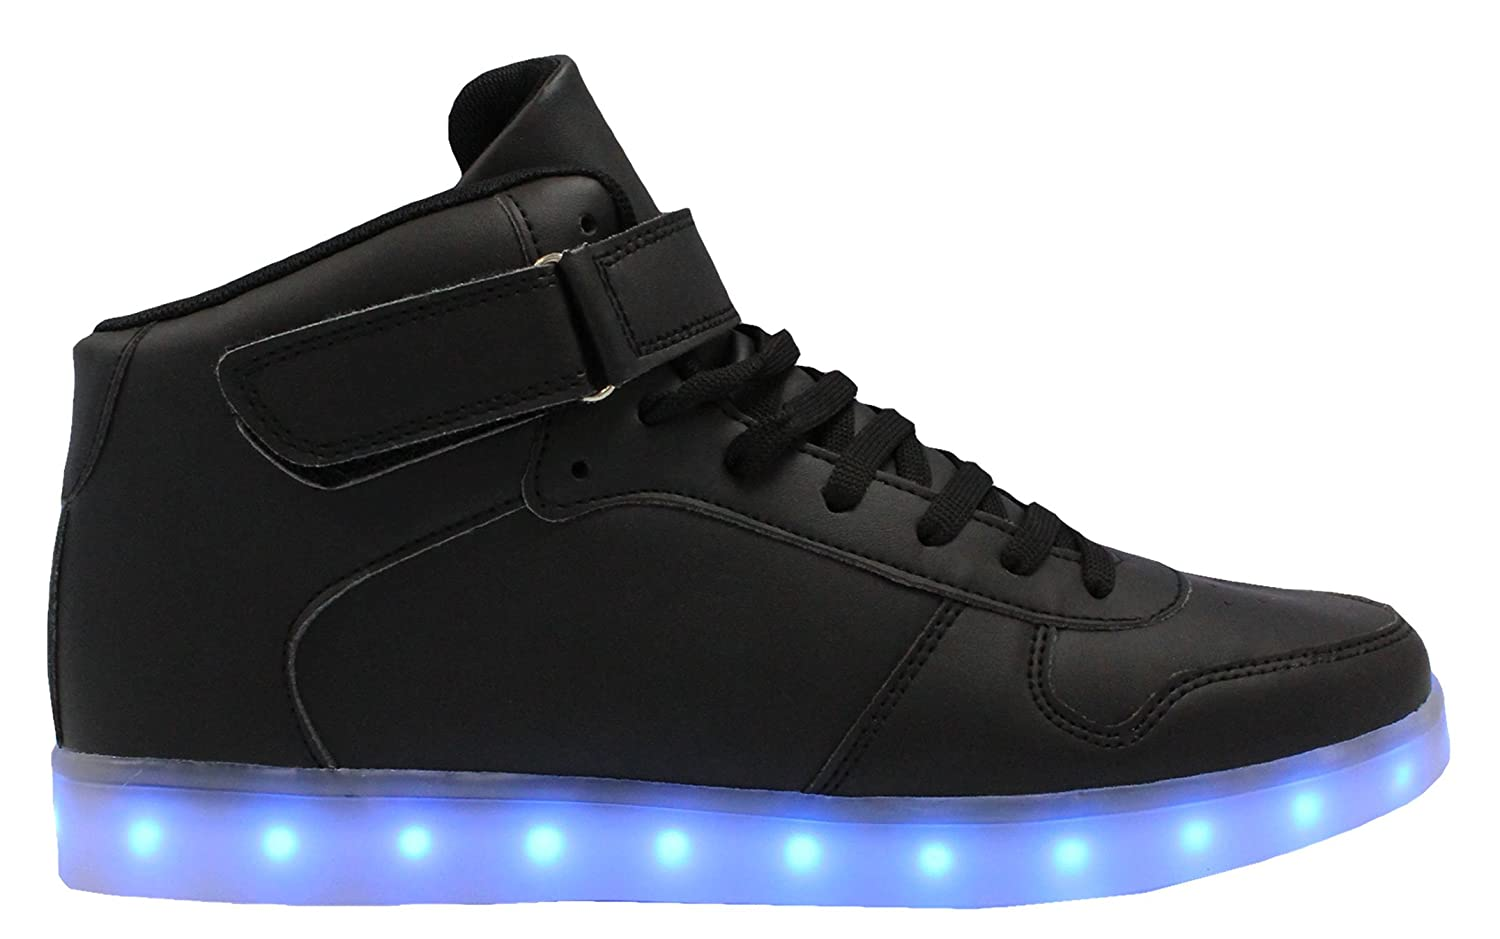 Transformania Toys Galaxy LED Shoes Light Up USB Charging High Top Lace & Strap Sneakers B076VTYYMH 9 US Kid / 25 E.U.|Black